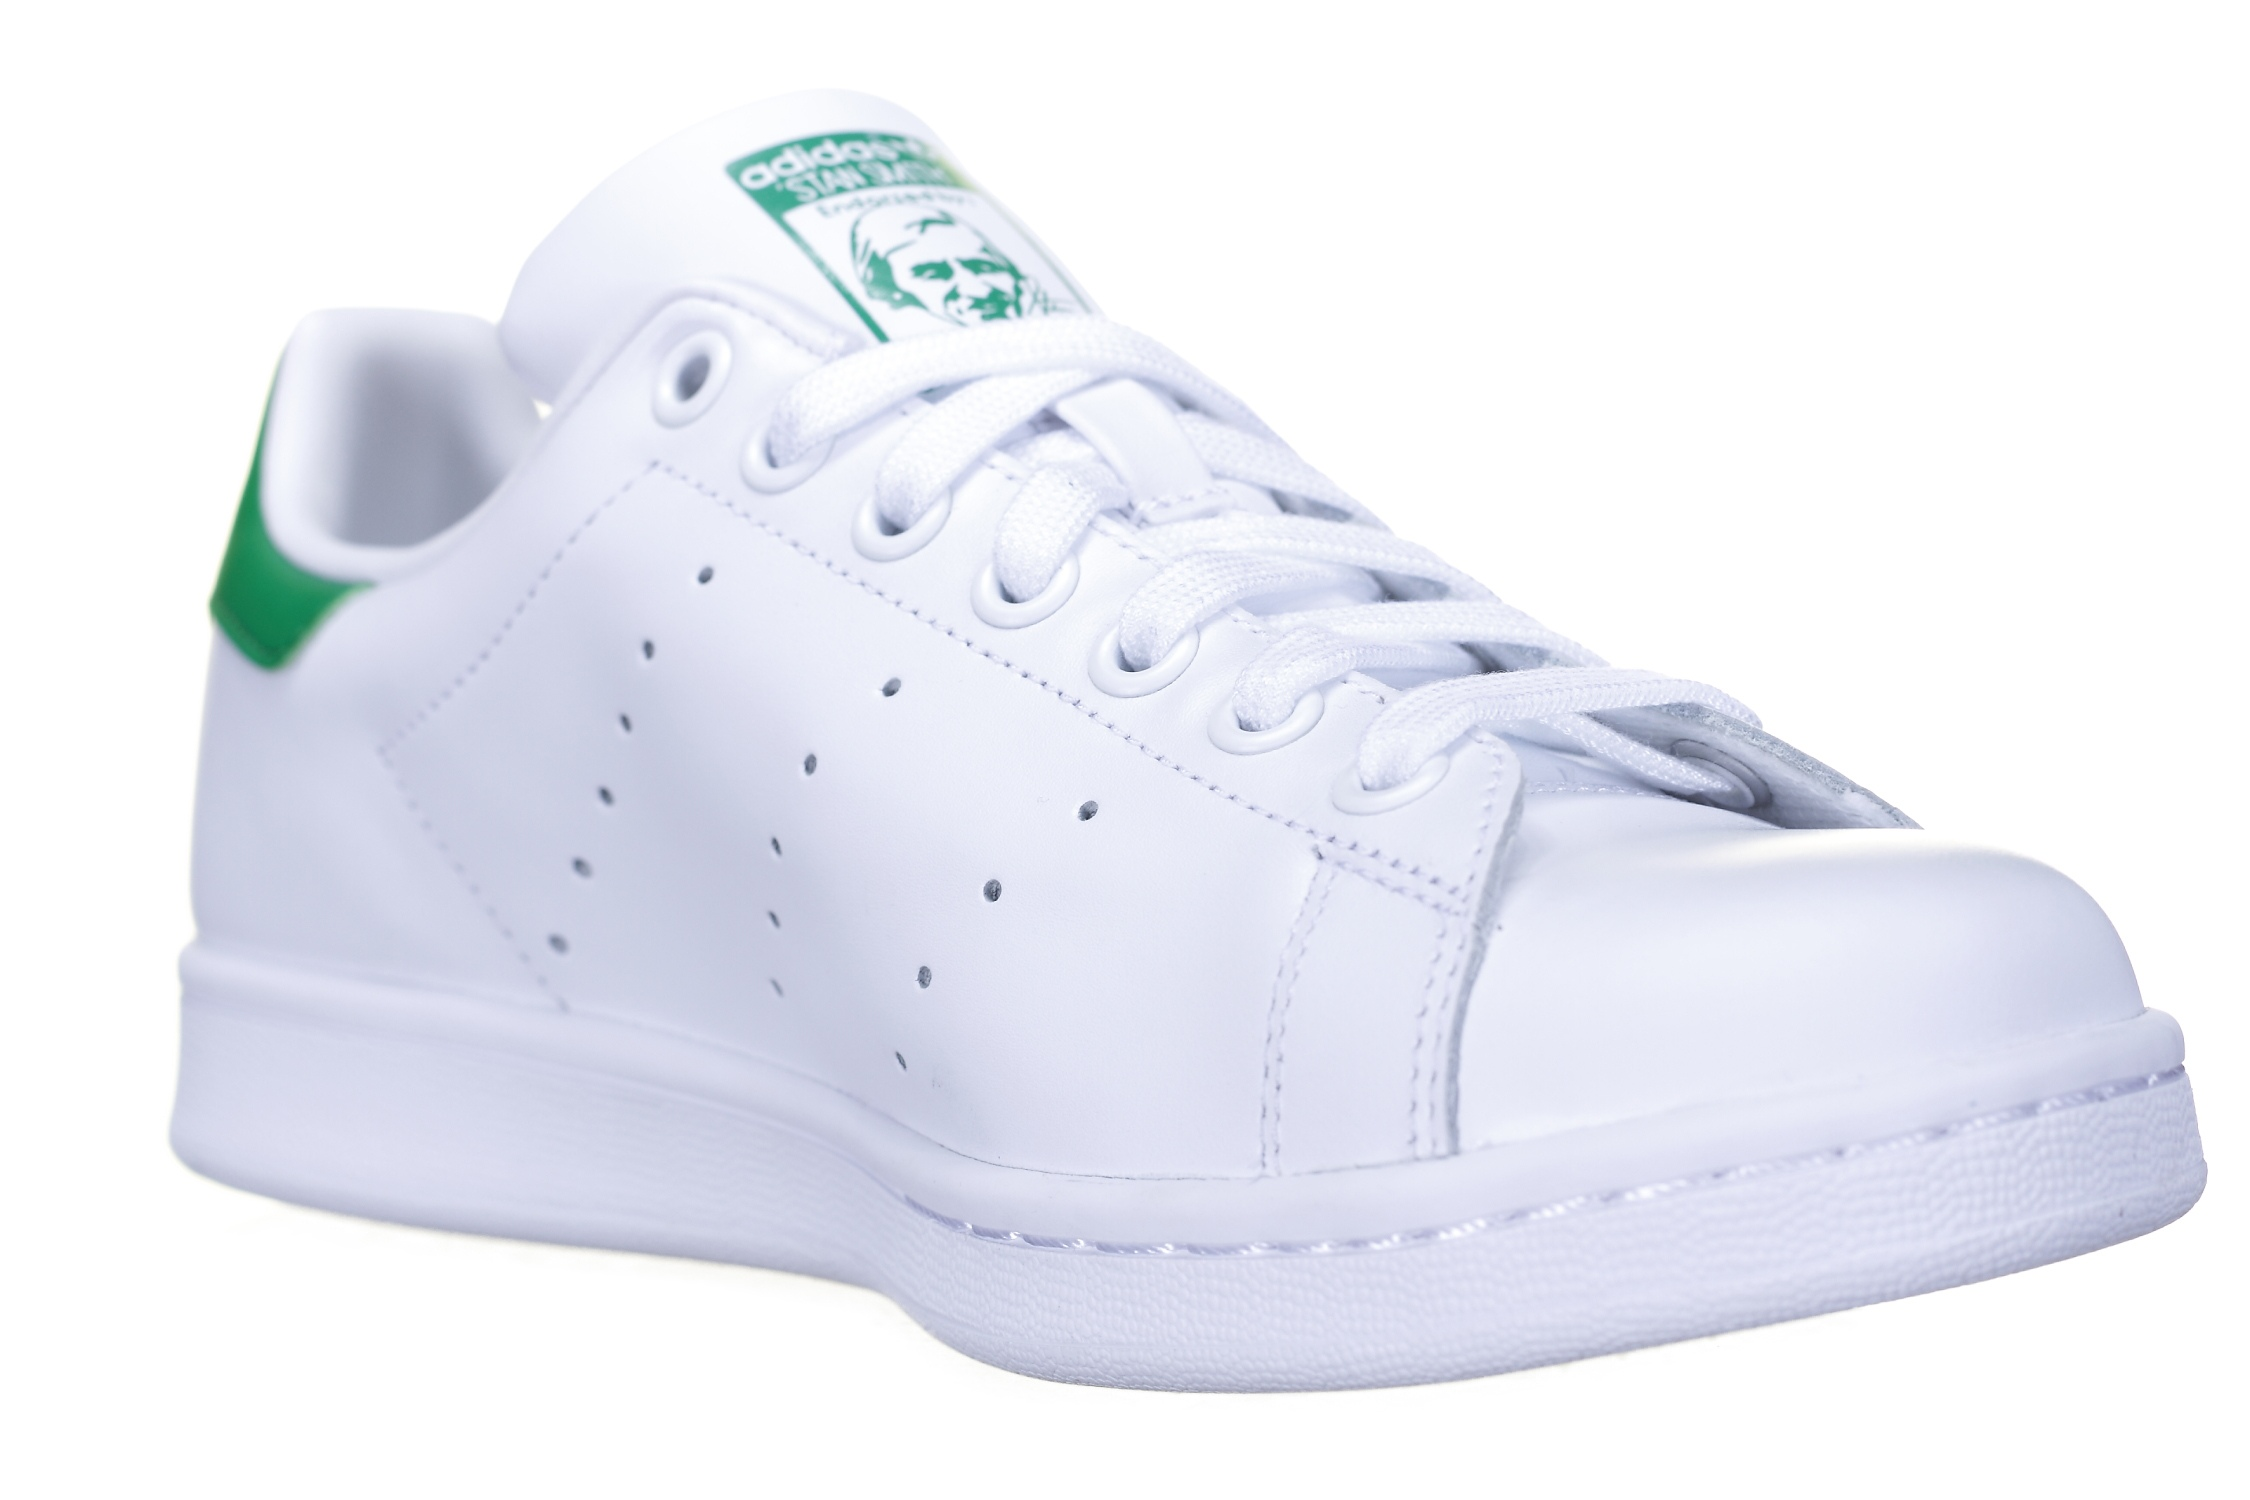 http://www.leadermode.com/70902/adidas-stan-smith-blanc-vert.jpg